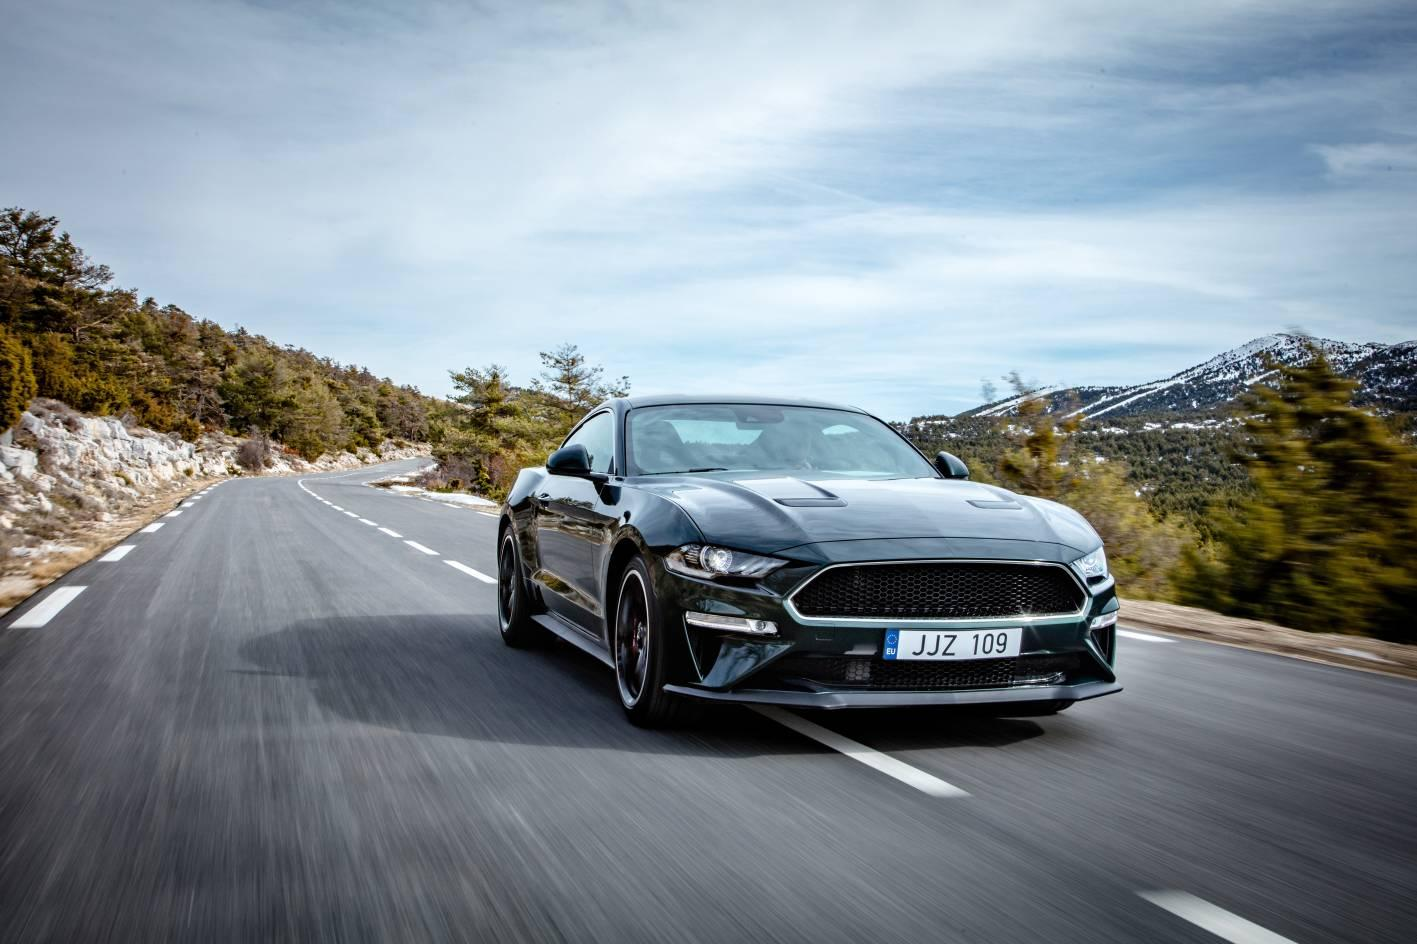 Ford Mustang Bullitt The Most Powerful Mustang Ever Sold In Just Cars